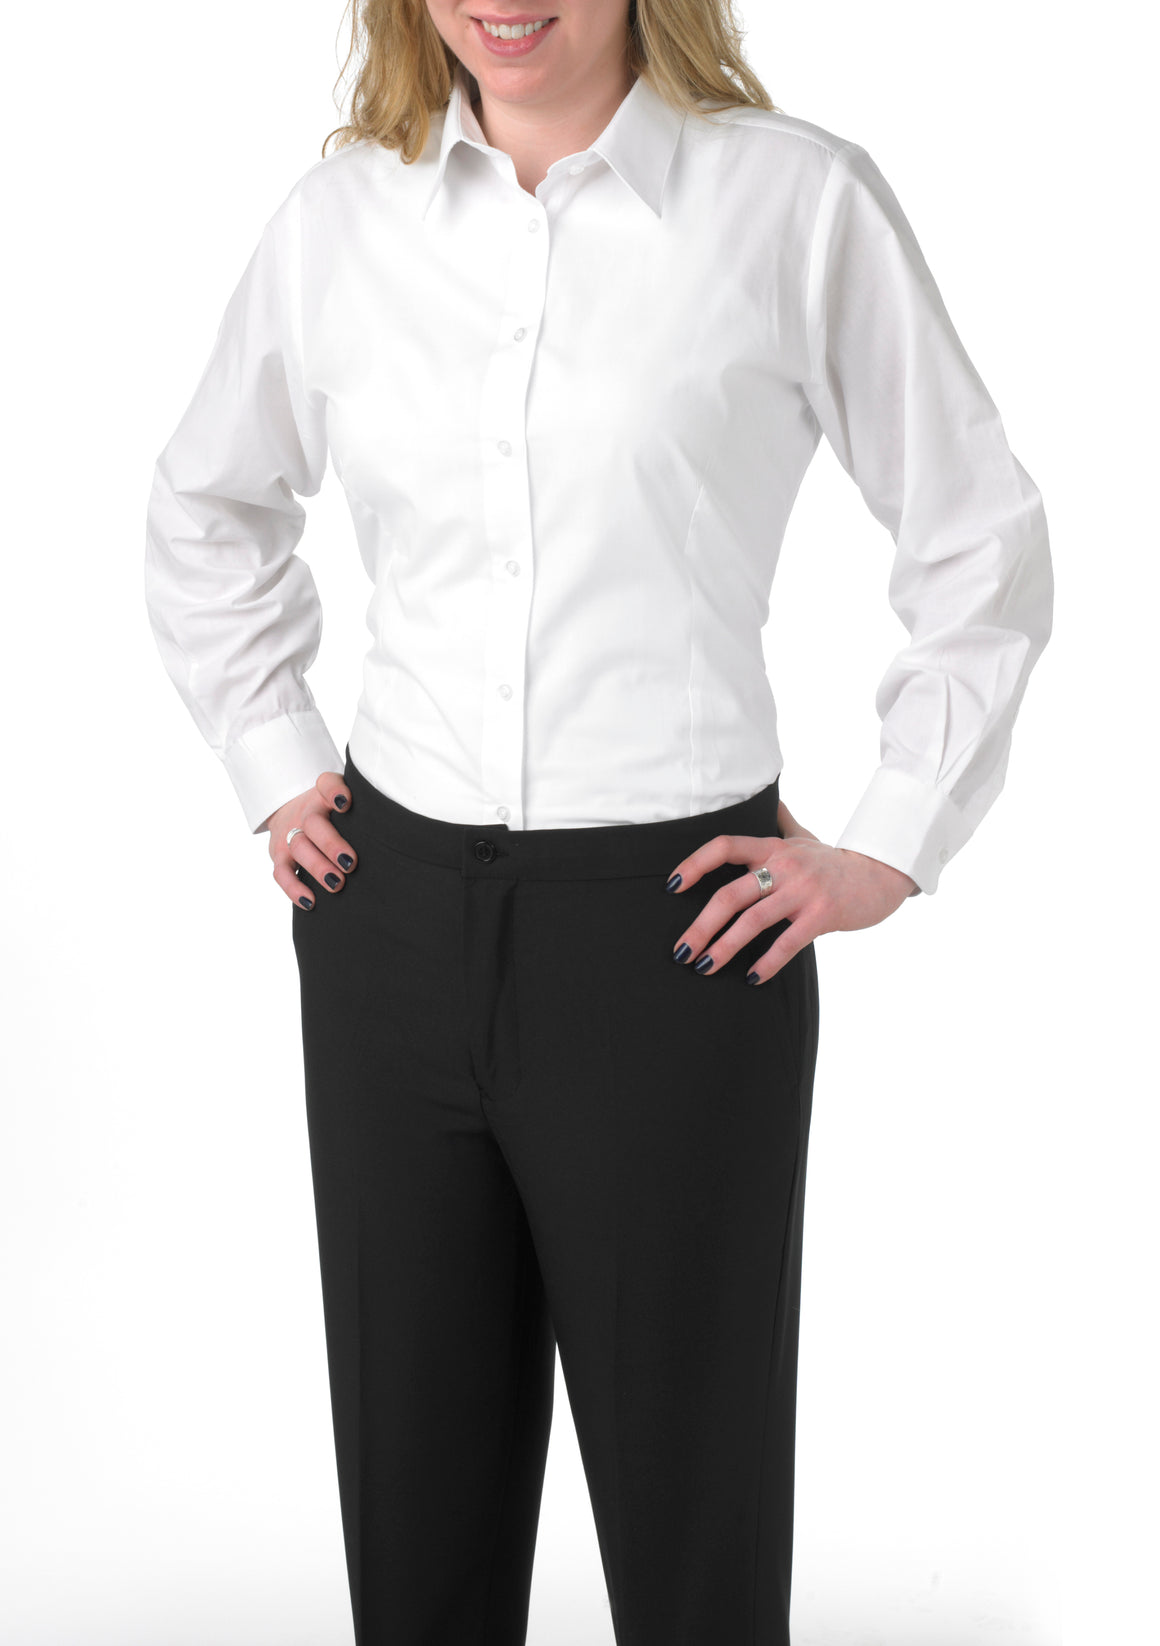 Women's White, Long-Sleeve Form-Fitted Dress Shirt